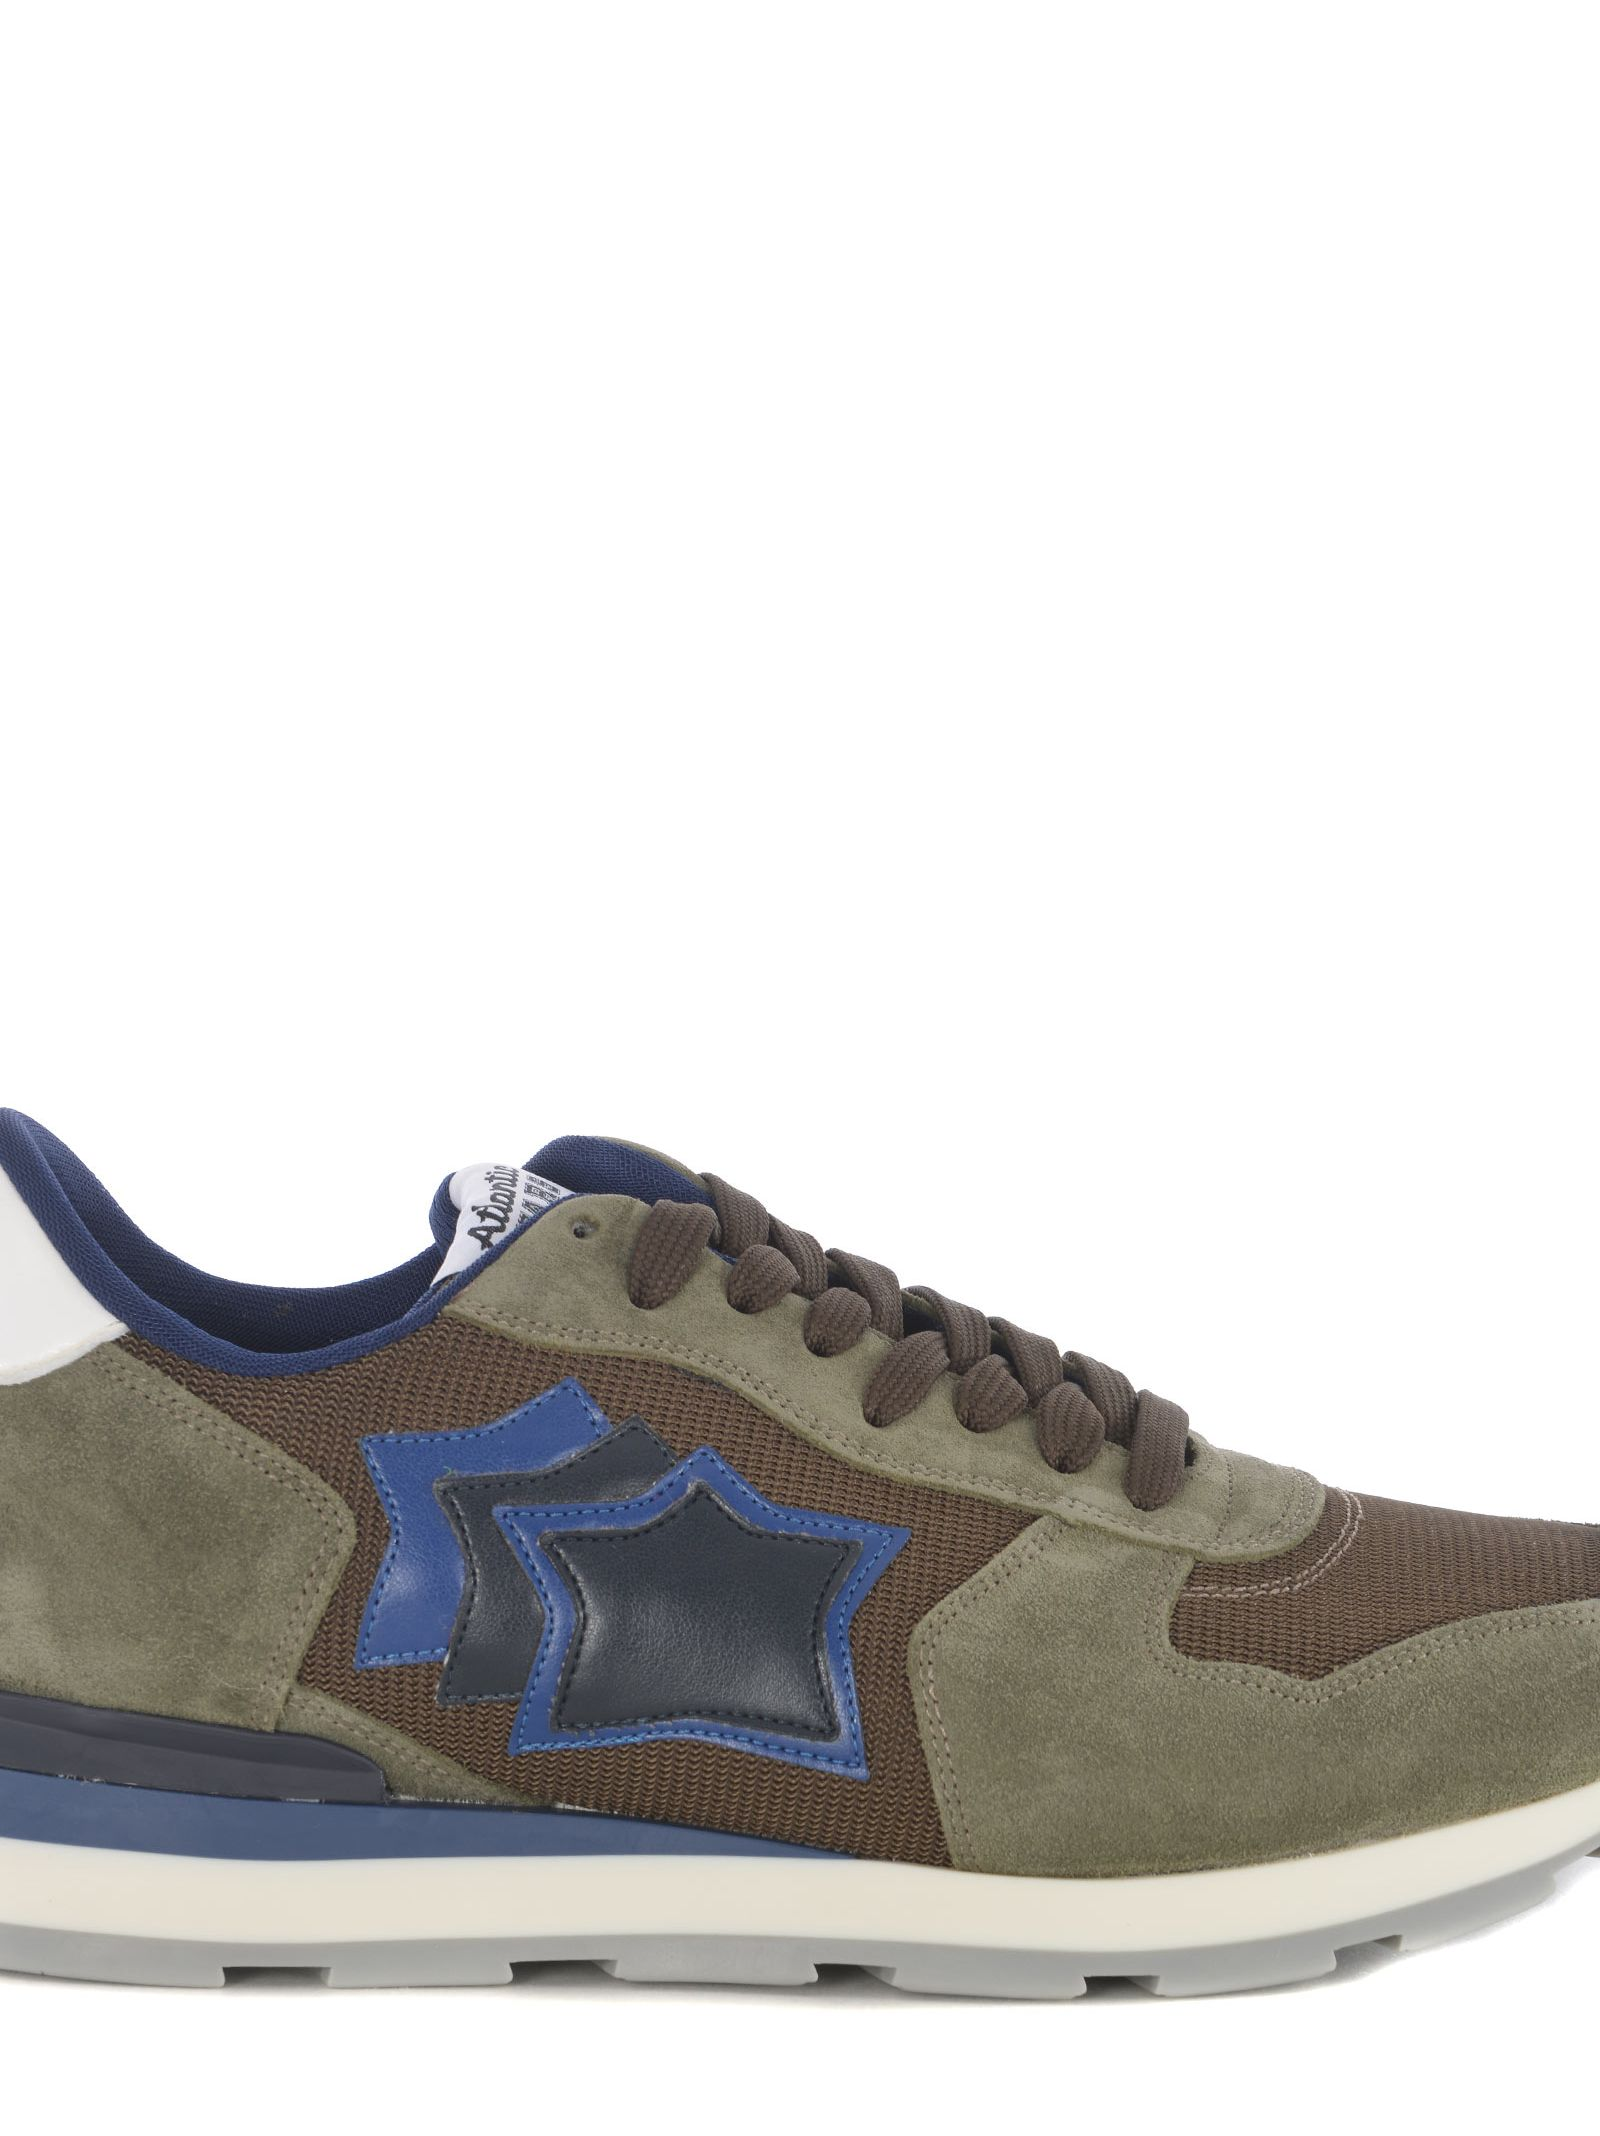 Atlantic Stars Star Lace Up Sneakers